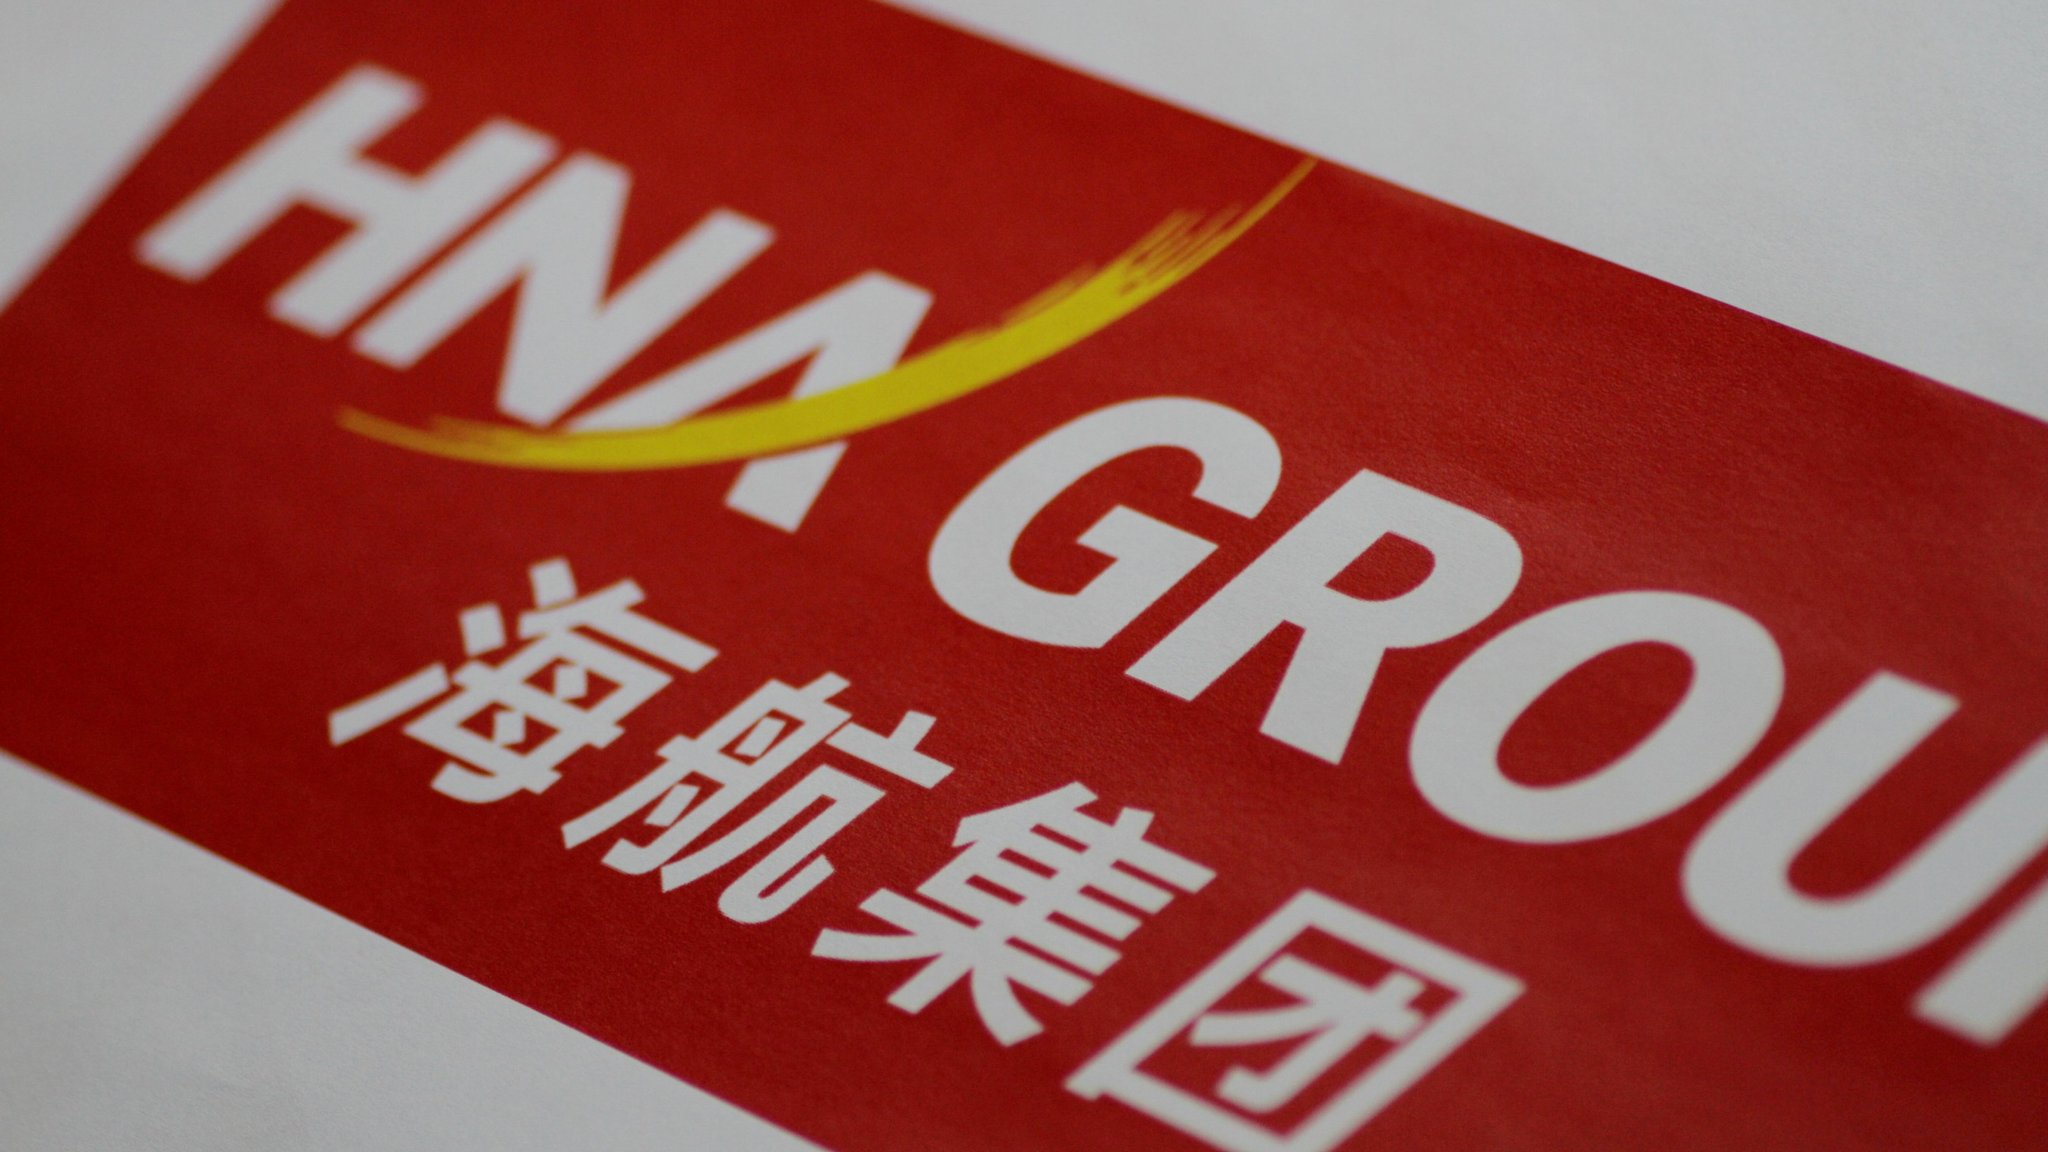 HNA unit's bank accounts briefly frozen amid cash crunch